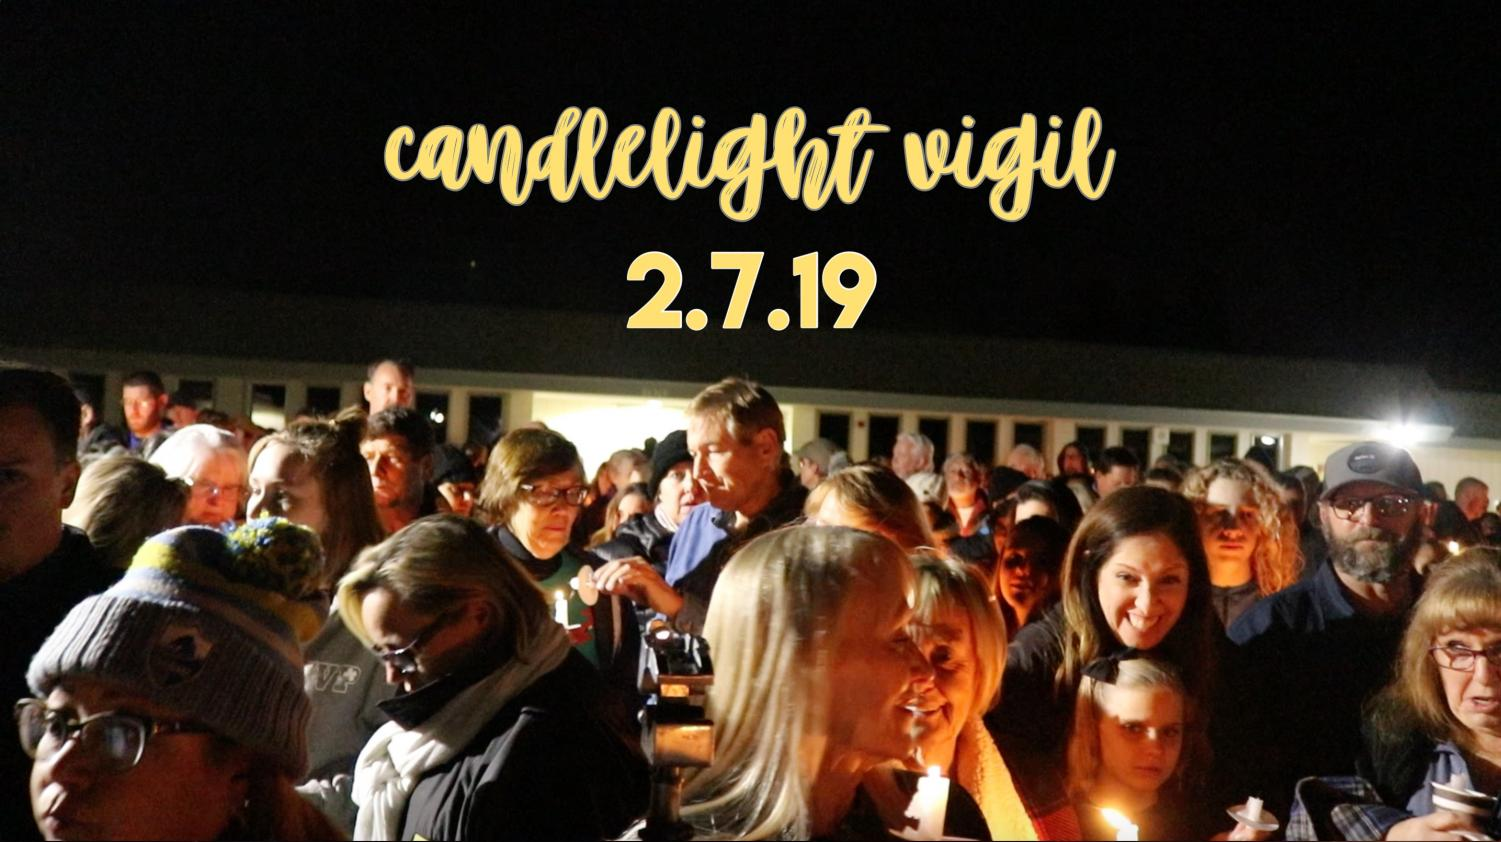 On Febuary 7, 2019 the city of Yorba Linda gathered together to comemorate the random occurance that struck the city days before. Over one hundred residents had shown up to show their support for the victims and families of the plane crash.